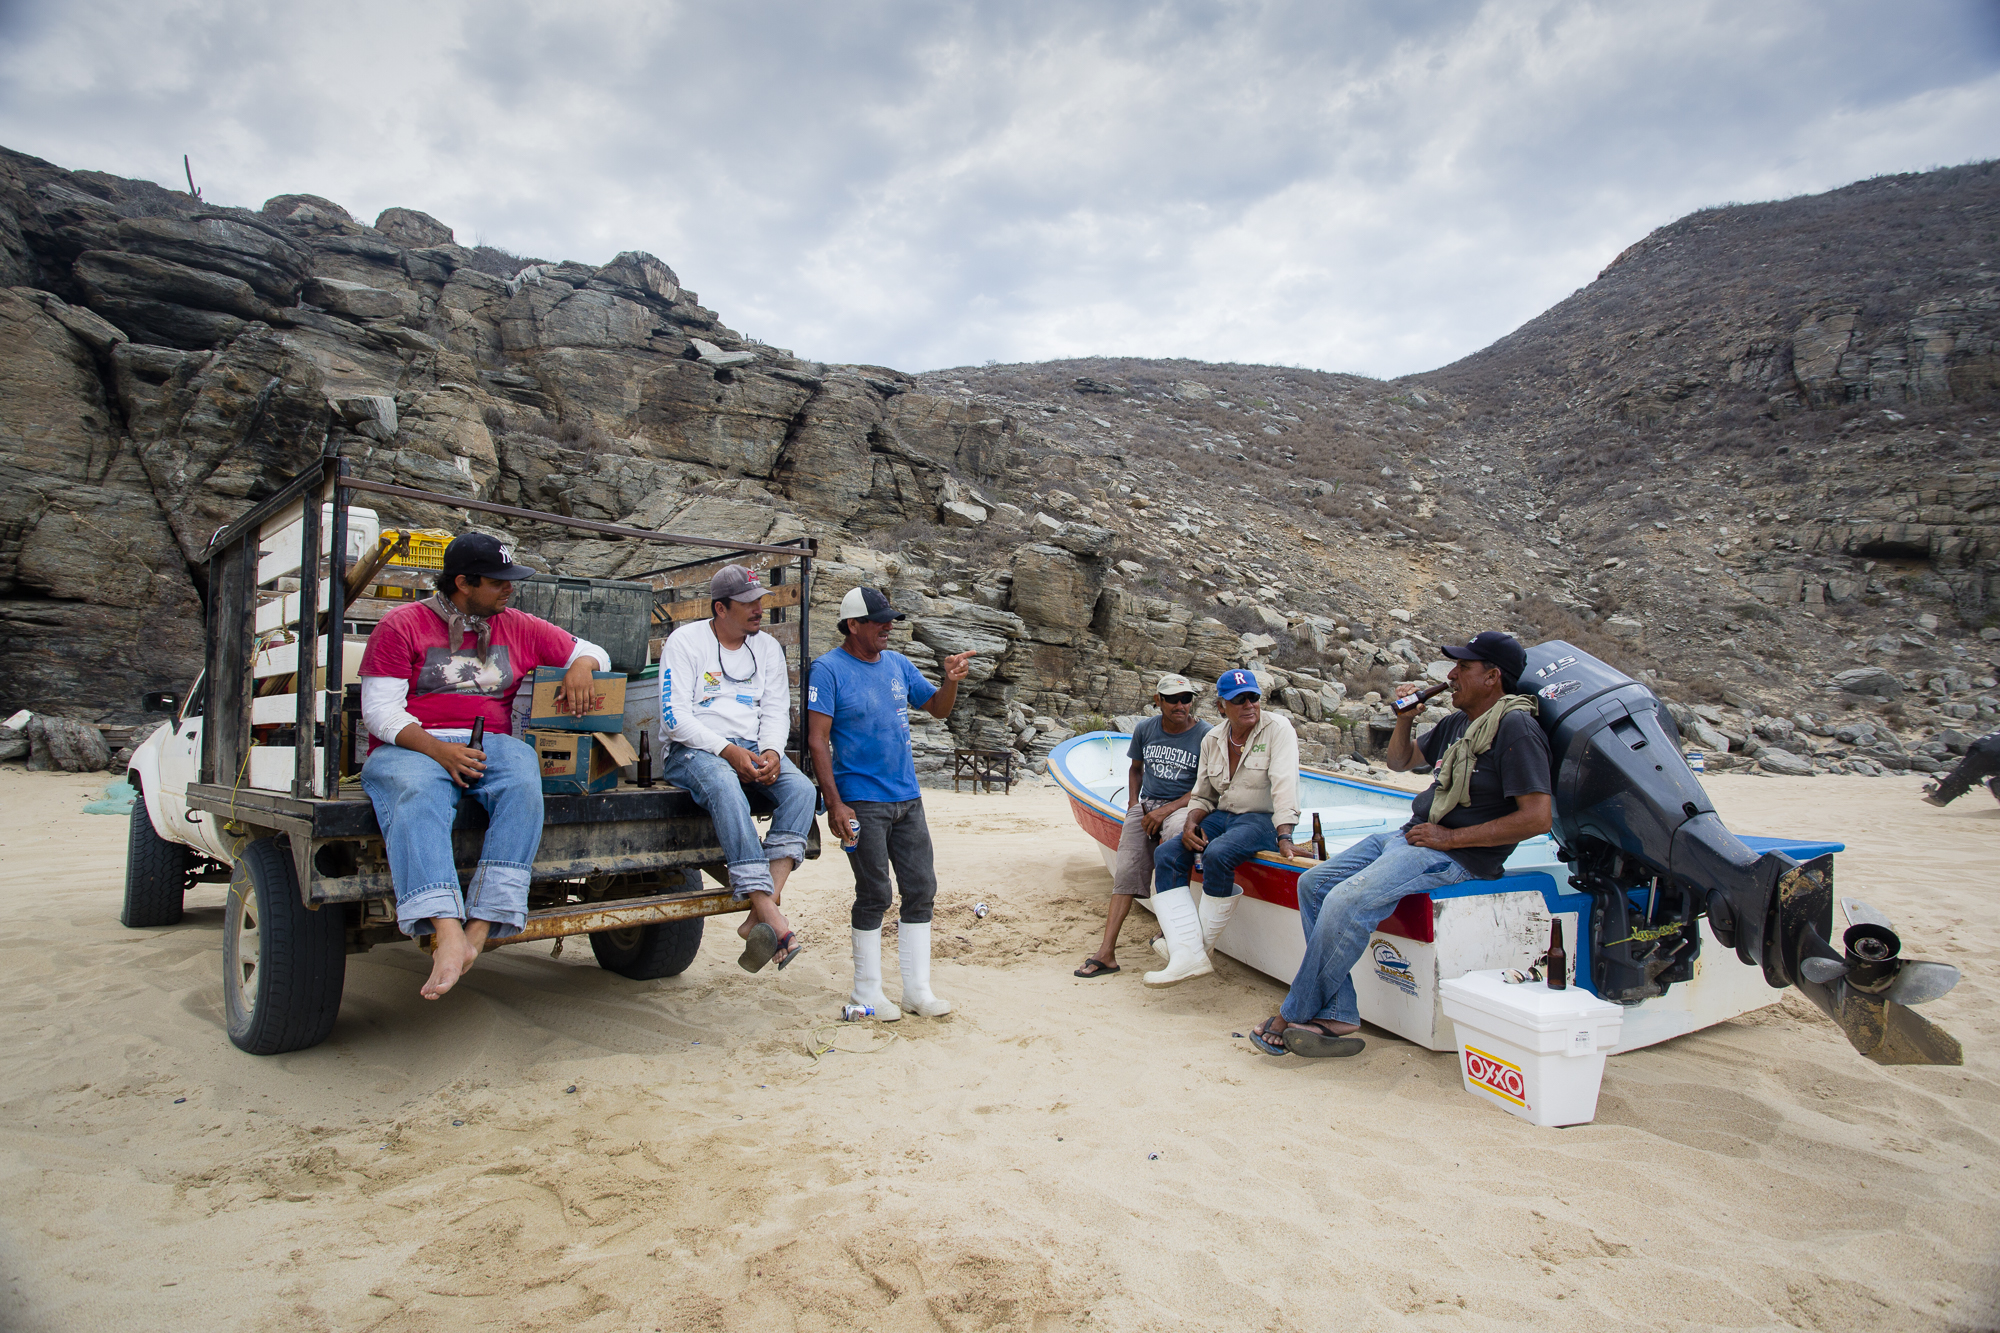 Fishermen chat and drink beer after finishing a work day. The fishermen of Punta Lobos have formed a tightly-knit community; many of them have been working together for years, and many come from families that have been working in Punta Lobos for generations.